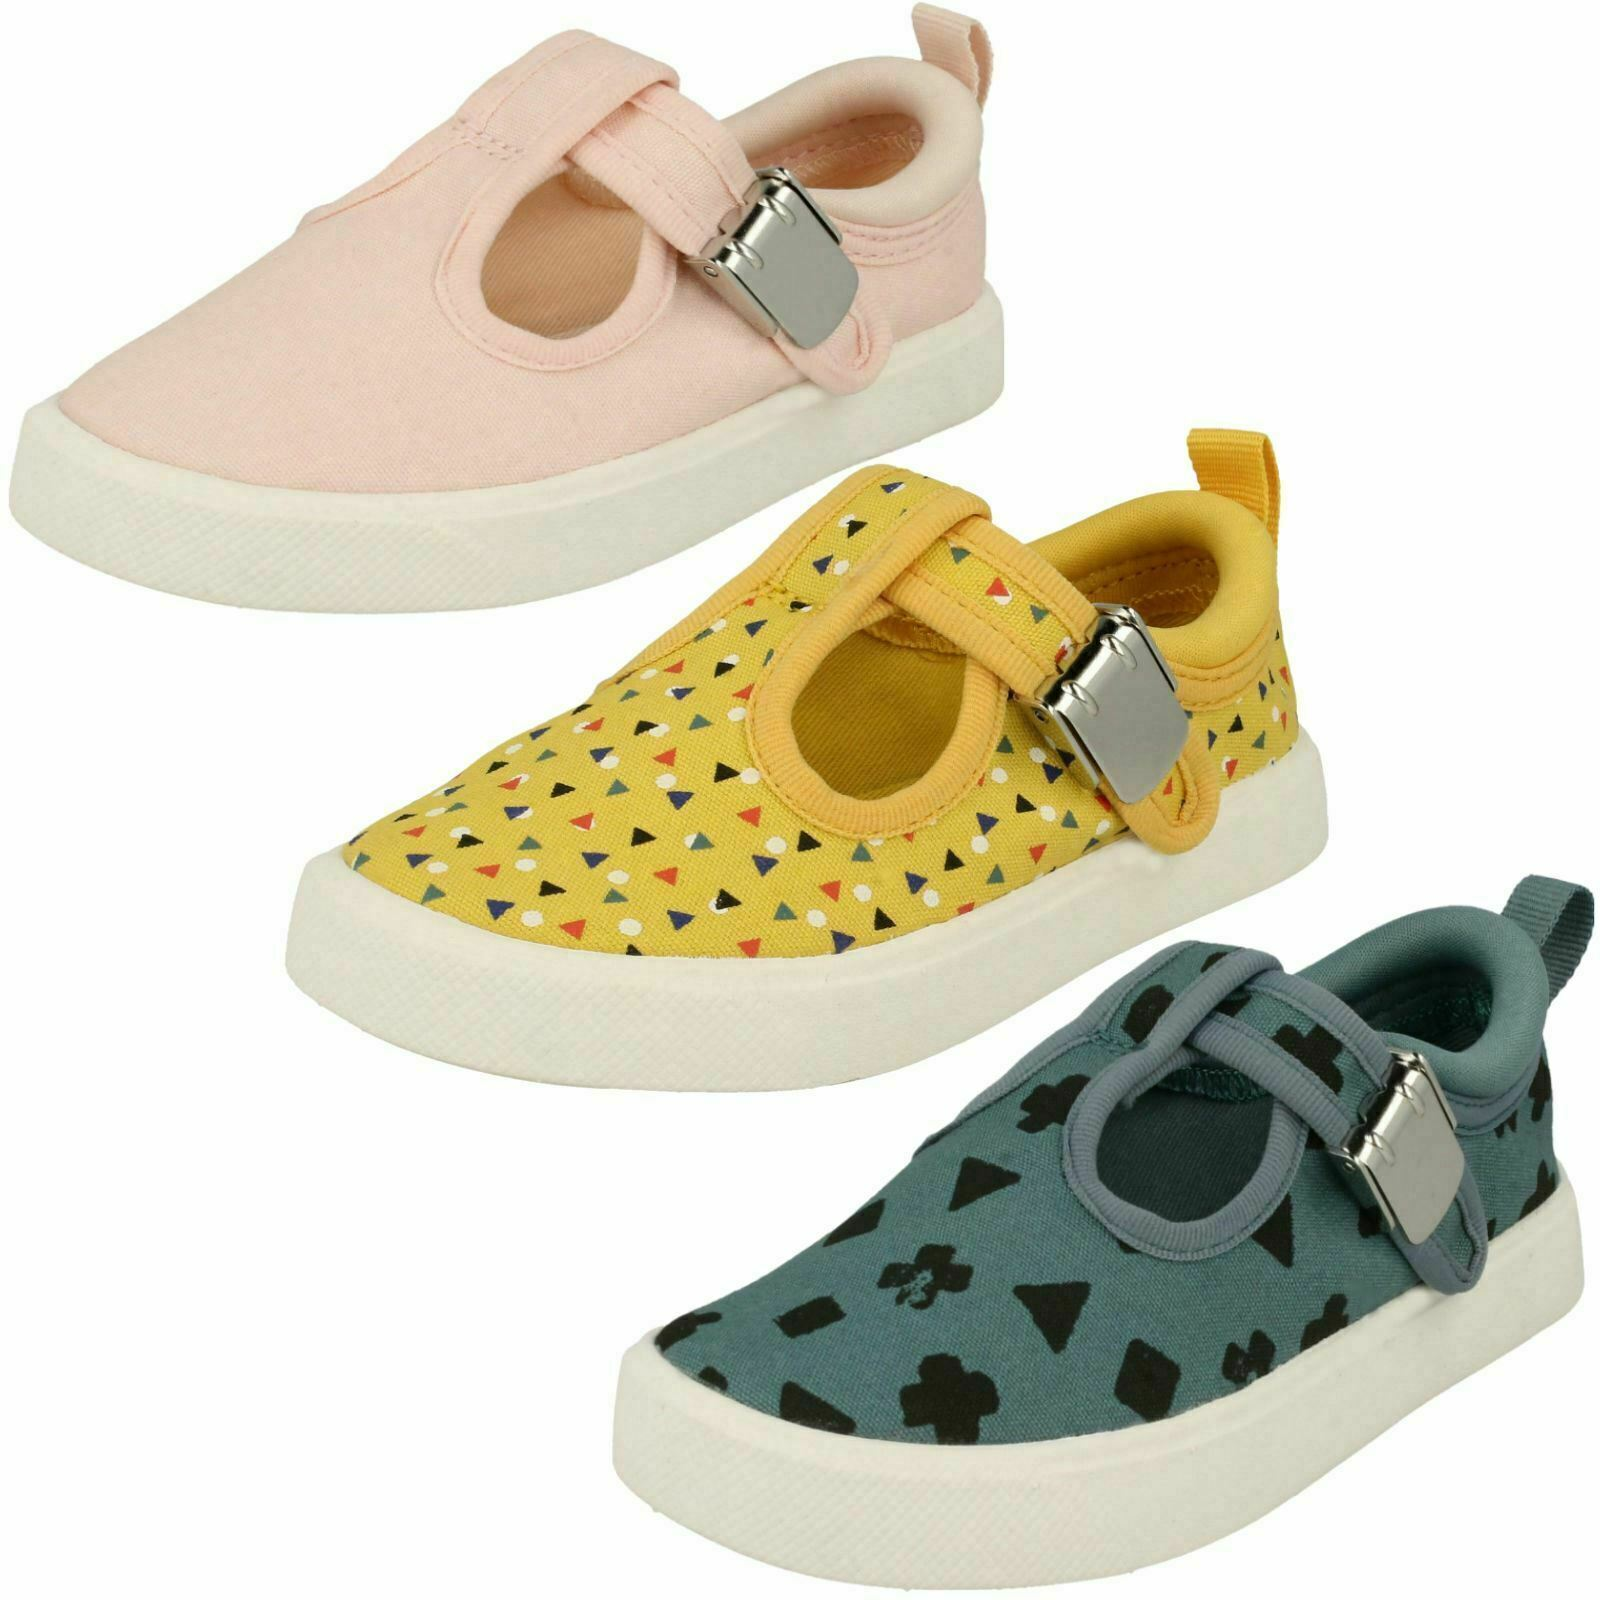 GIRLS BOYS TODDLER CLARKS T BAR CLASP SUMMER PUMPS CANVAS SHOES CITY SPARK SIZE